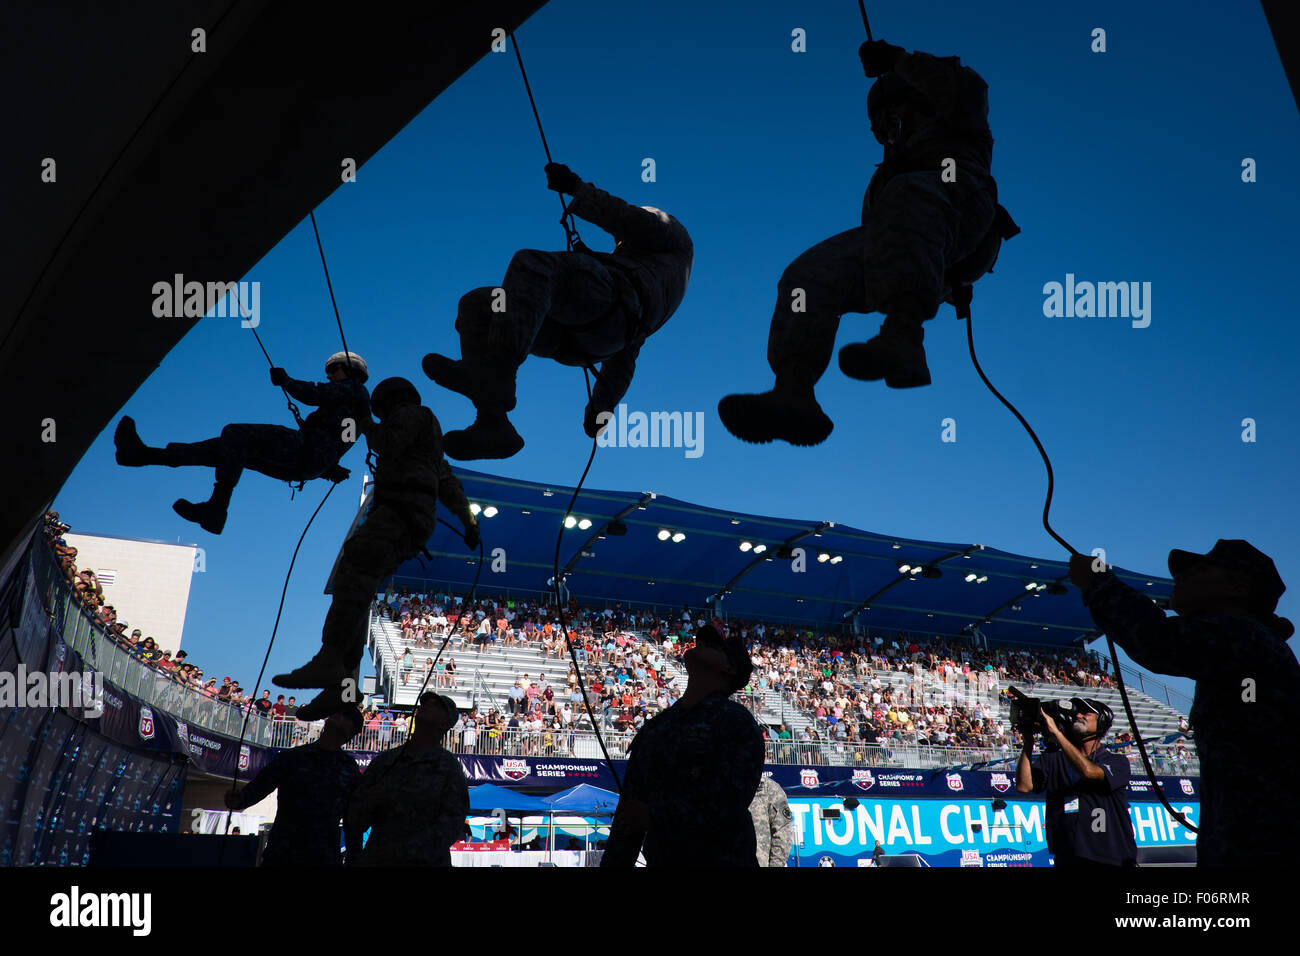 Military personnel rapel into the aquatic center during starting ceremonies of the Phillips 66 National Swim Championships - Stock Image